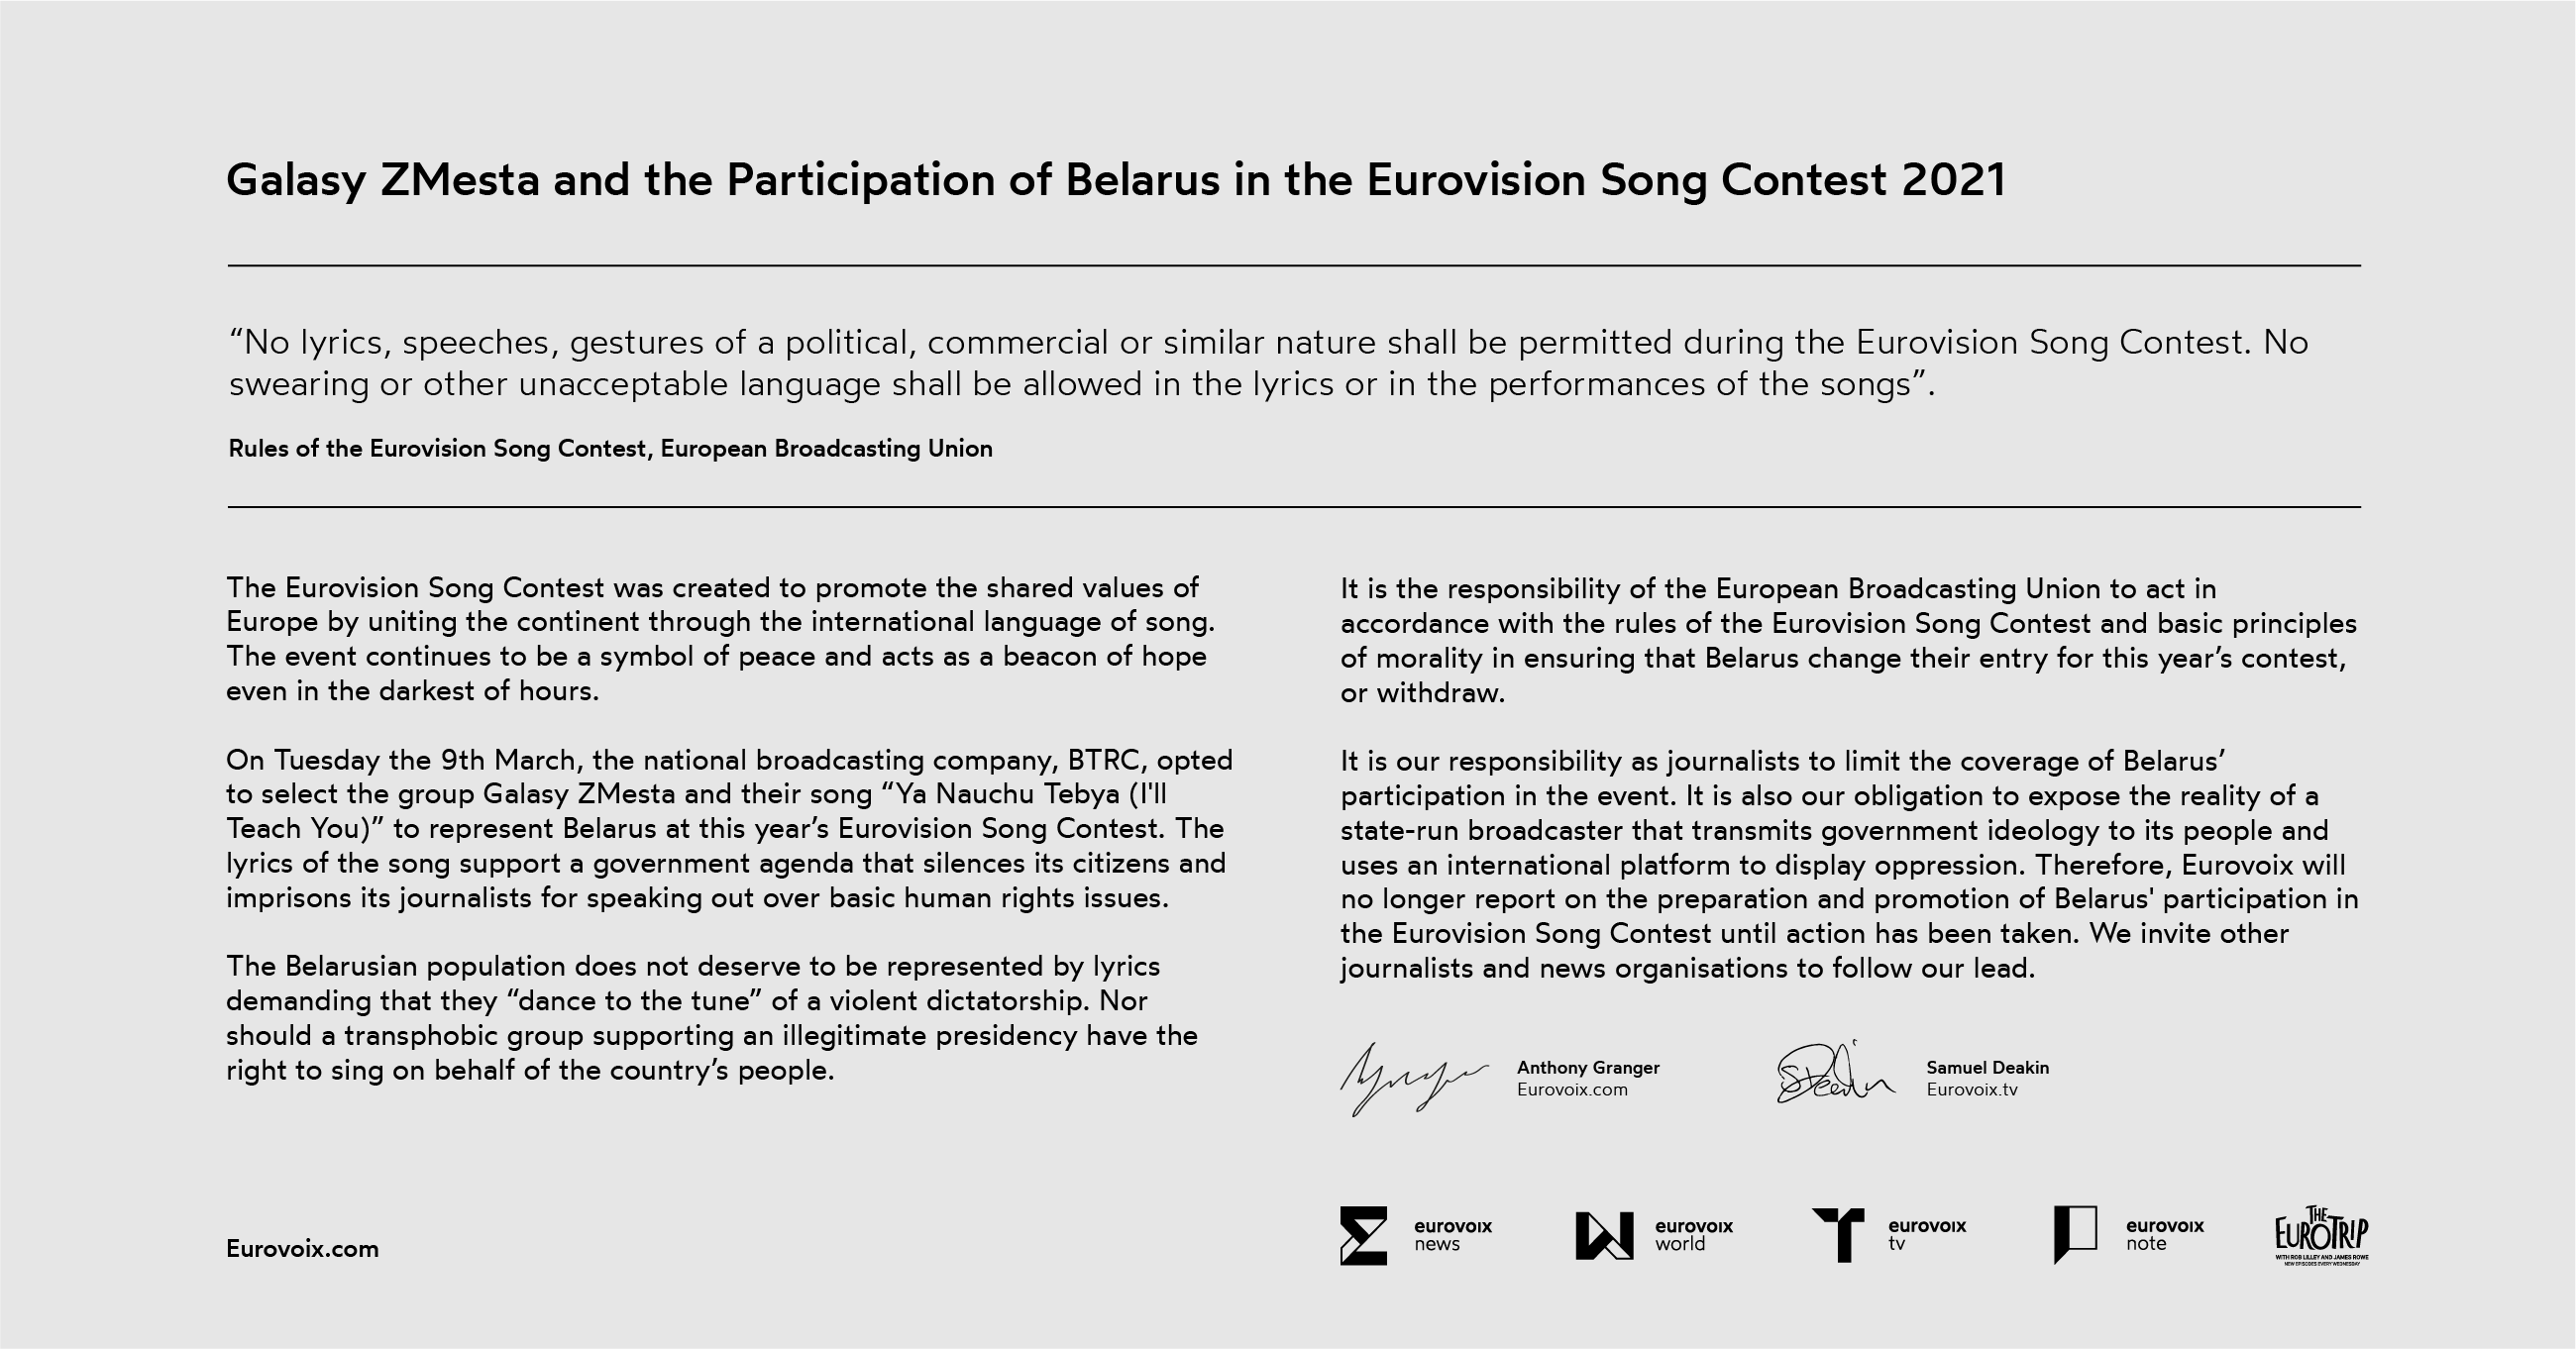 Belarus at the Eurovision Song Contest 2021: A Statement from Eurovoix.com